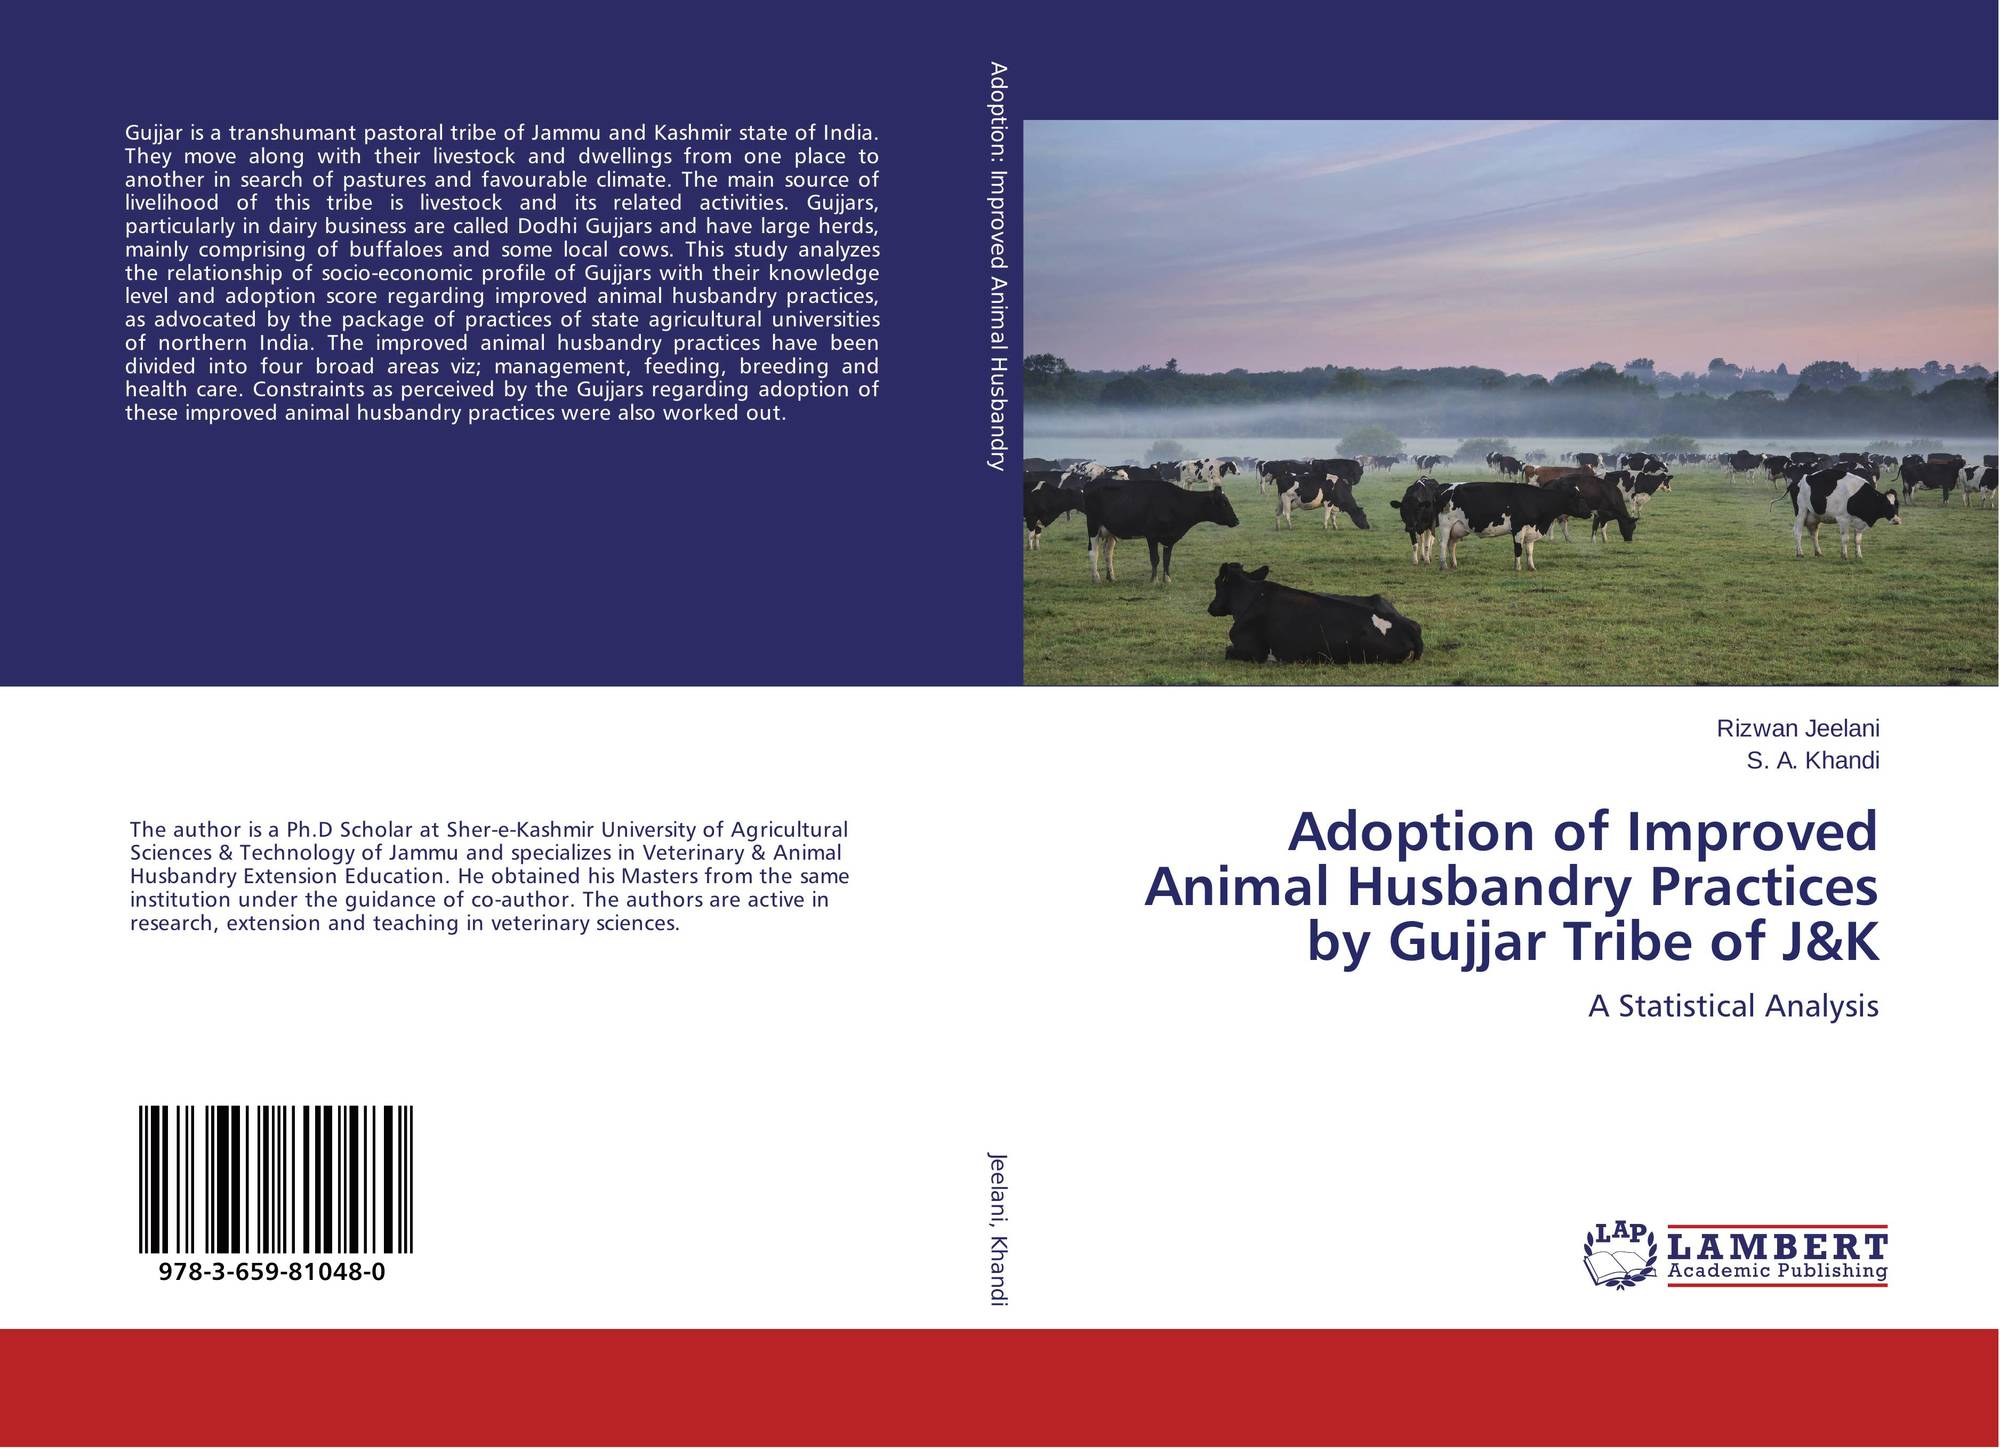 Adoption of Improved Animal Husbandry Practices by Gujjar